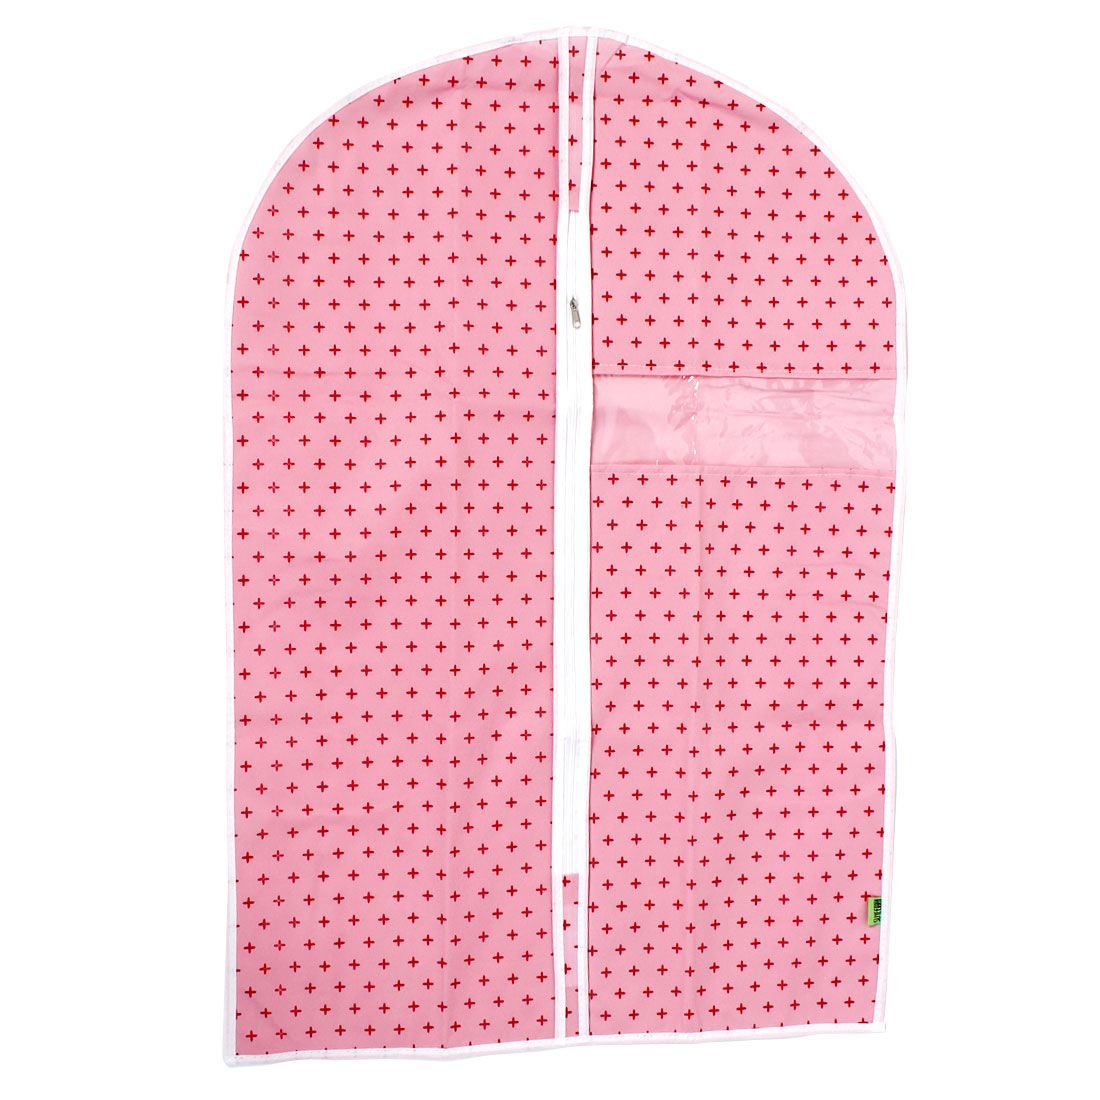 Wardrobe Hanging Clothing Garment Dust Cover Storage Organizer Bag Pink